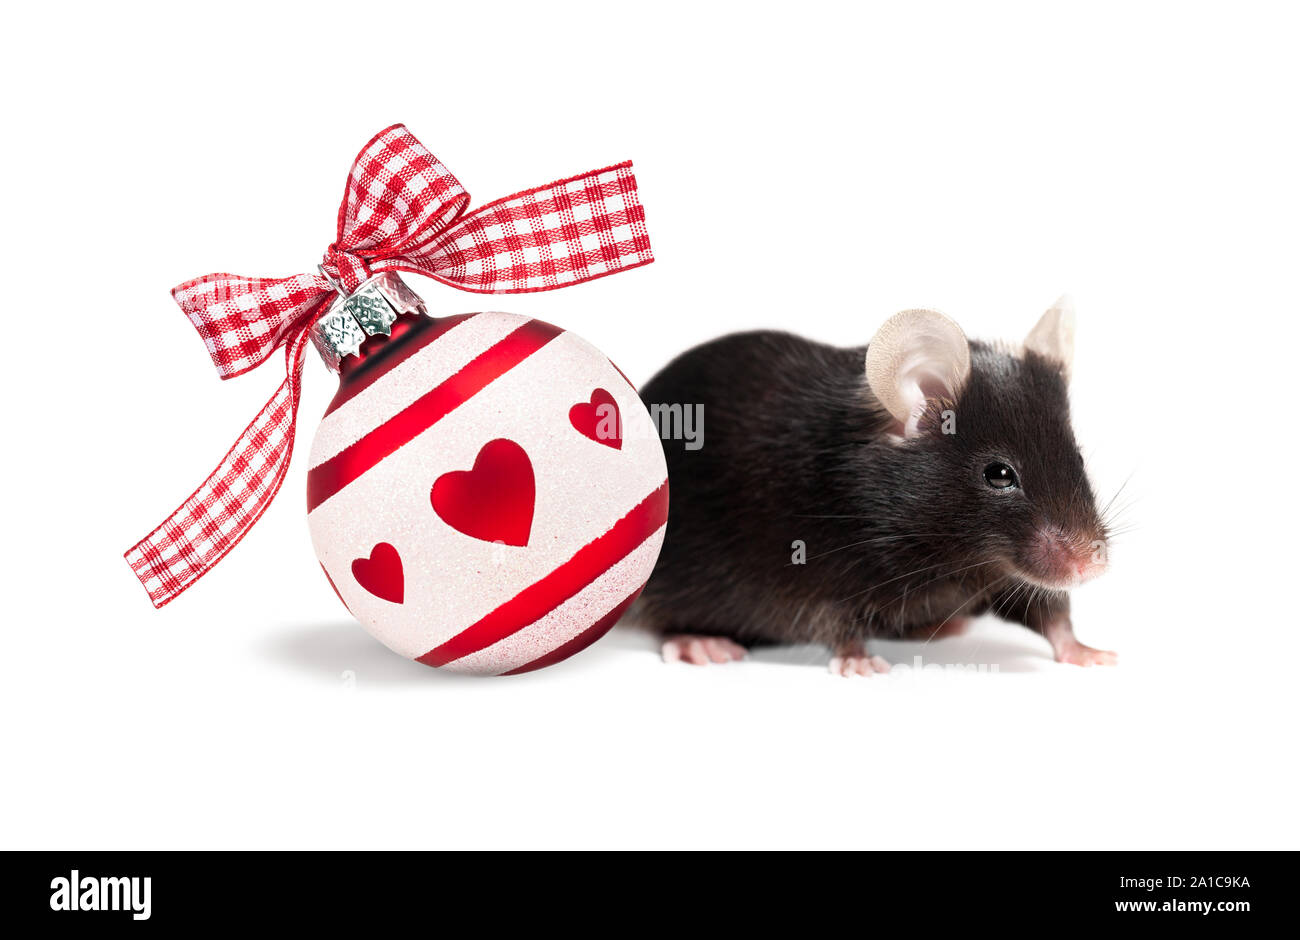 White Christmas ball with red hearts and a ribbon and black mouse, symbol of the New Year 2020 isolated on white background with shadows Stock Photo